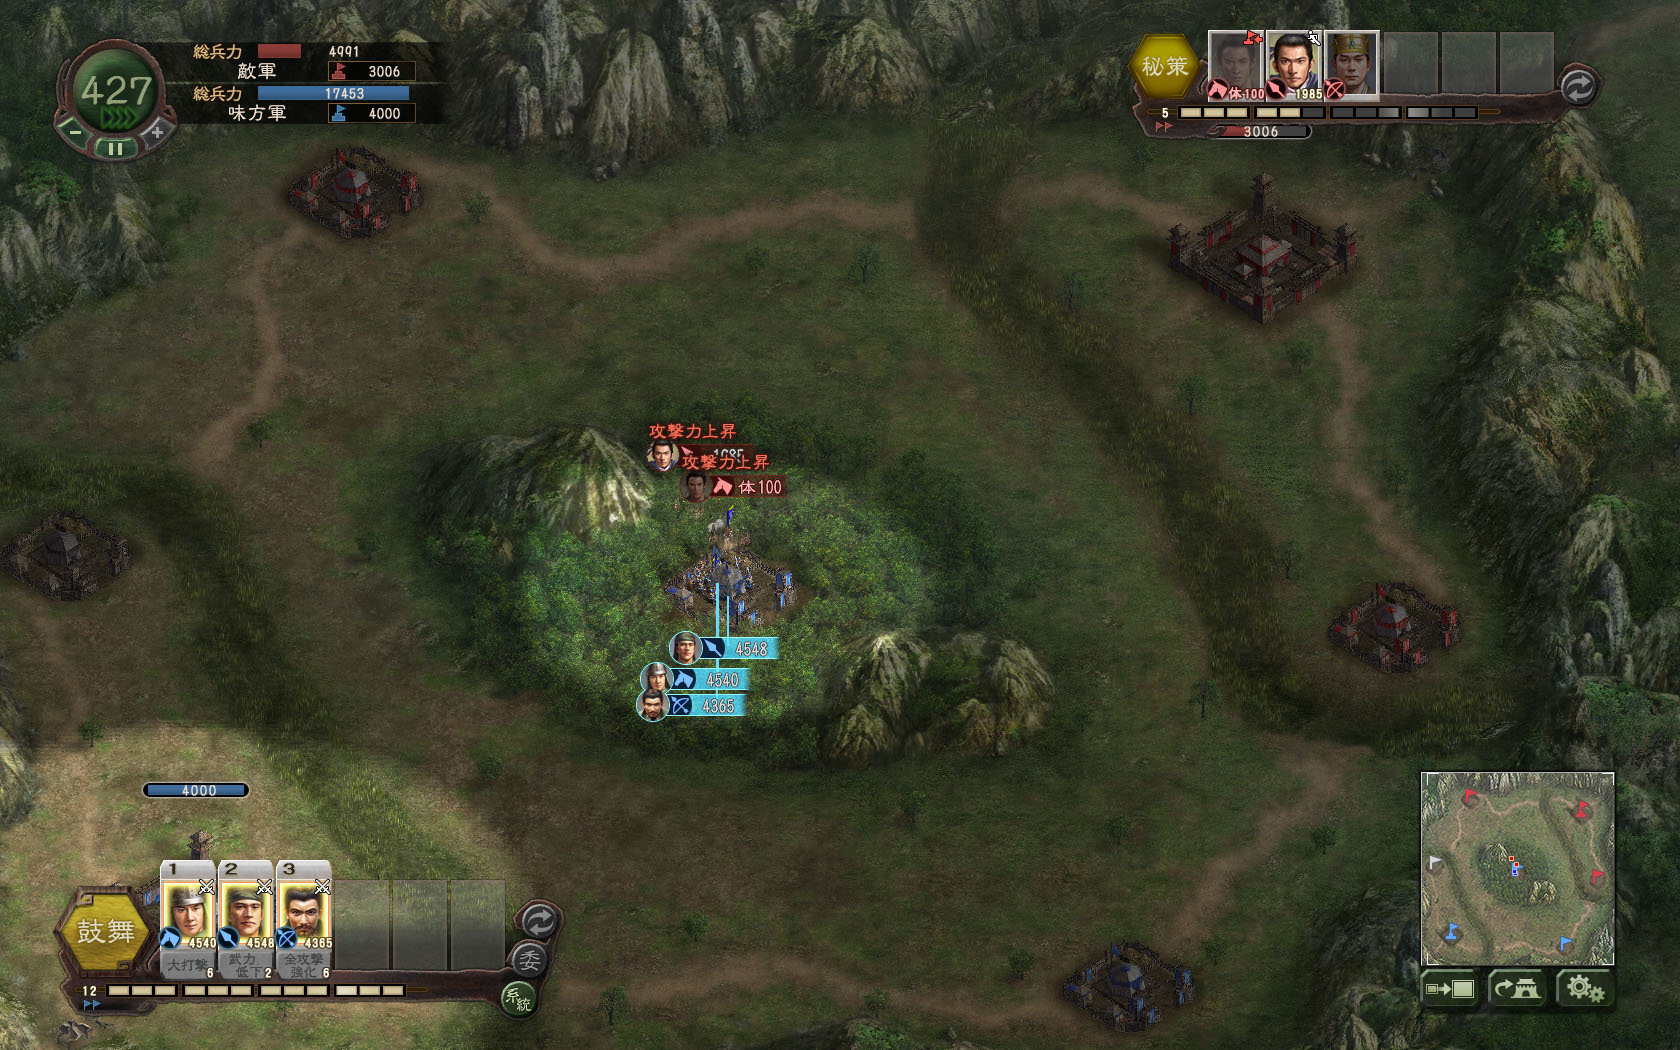 Romance of the Three Kingdoms XII with Power Up Kit · AppID: 628080